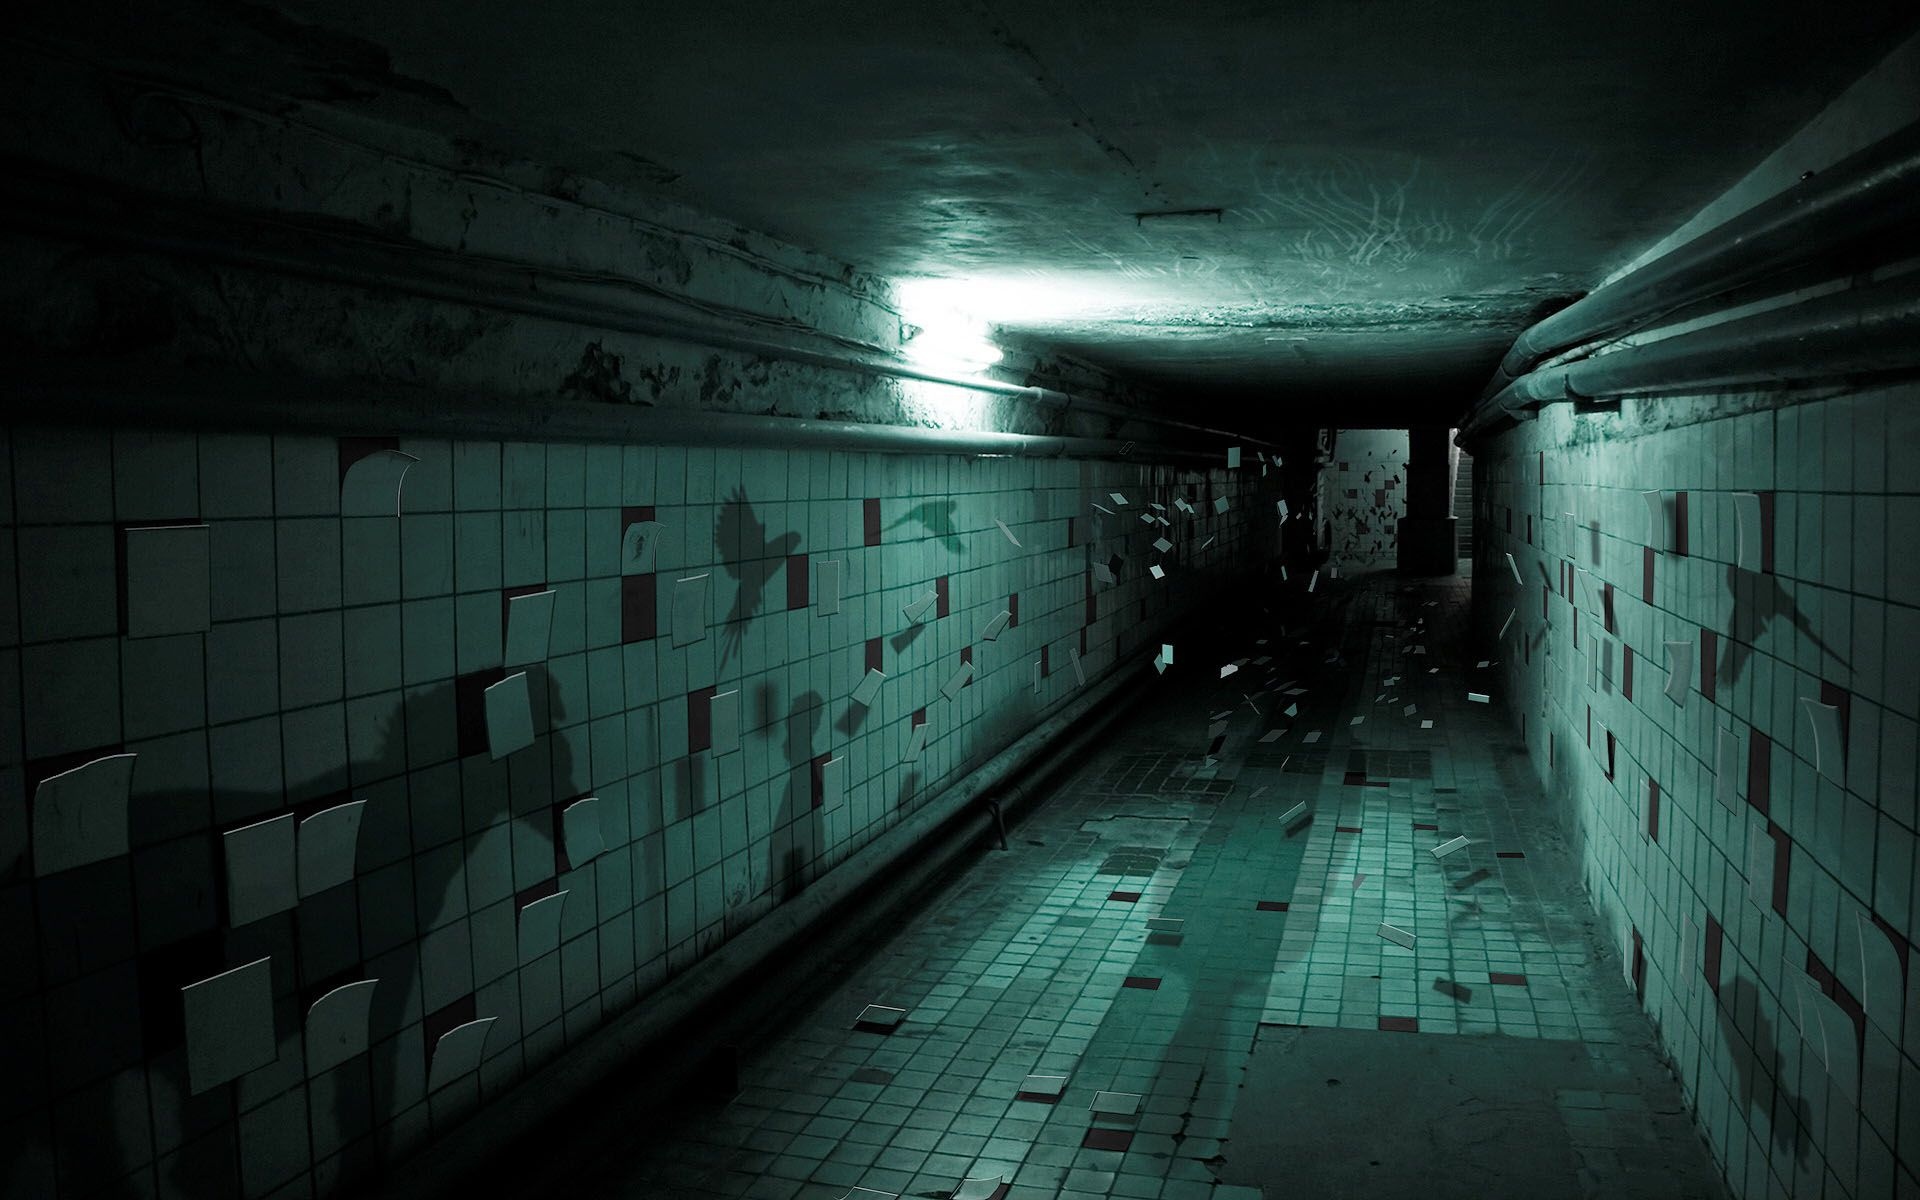 Terror Dreamland Scary wallpaper Scary backgrounds 1920x1200